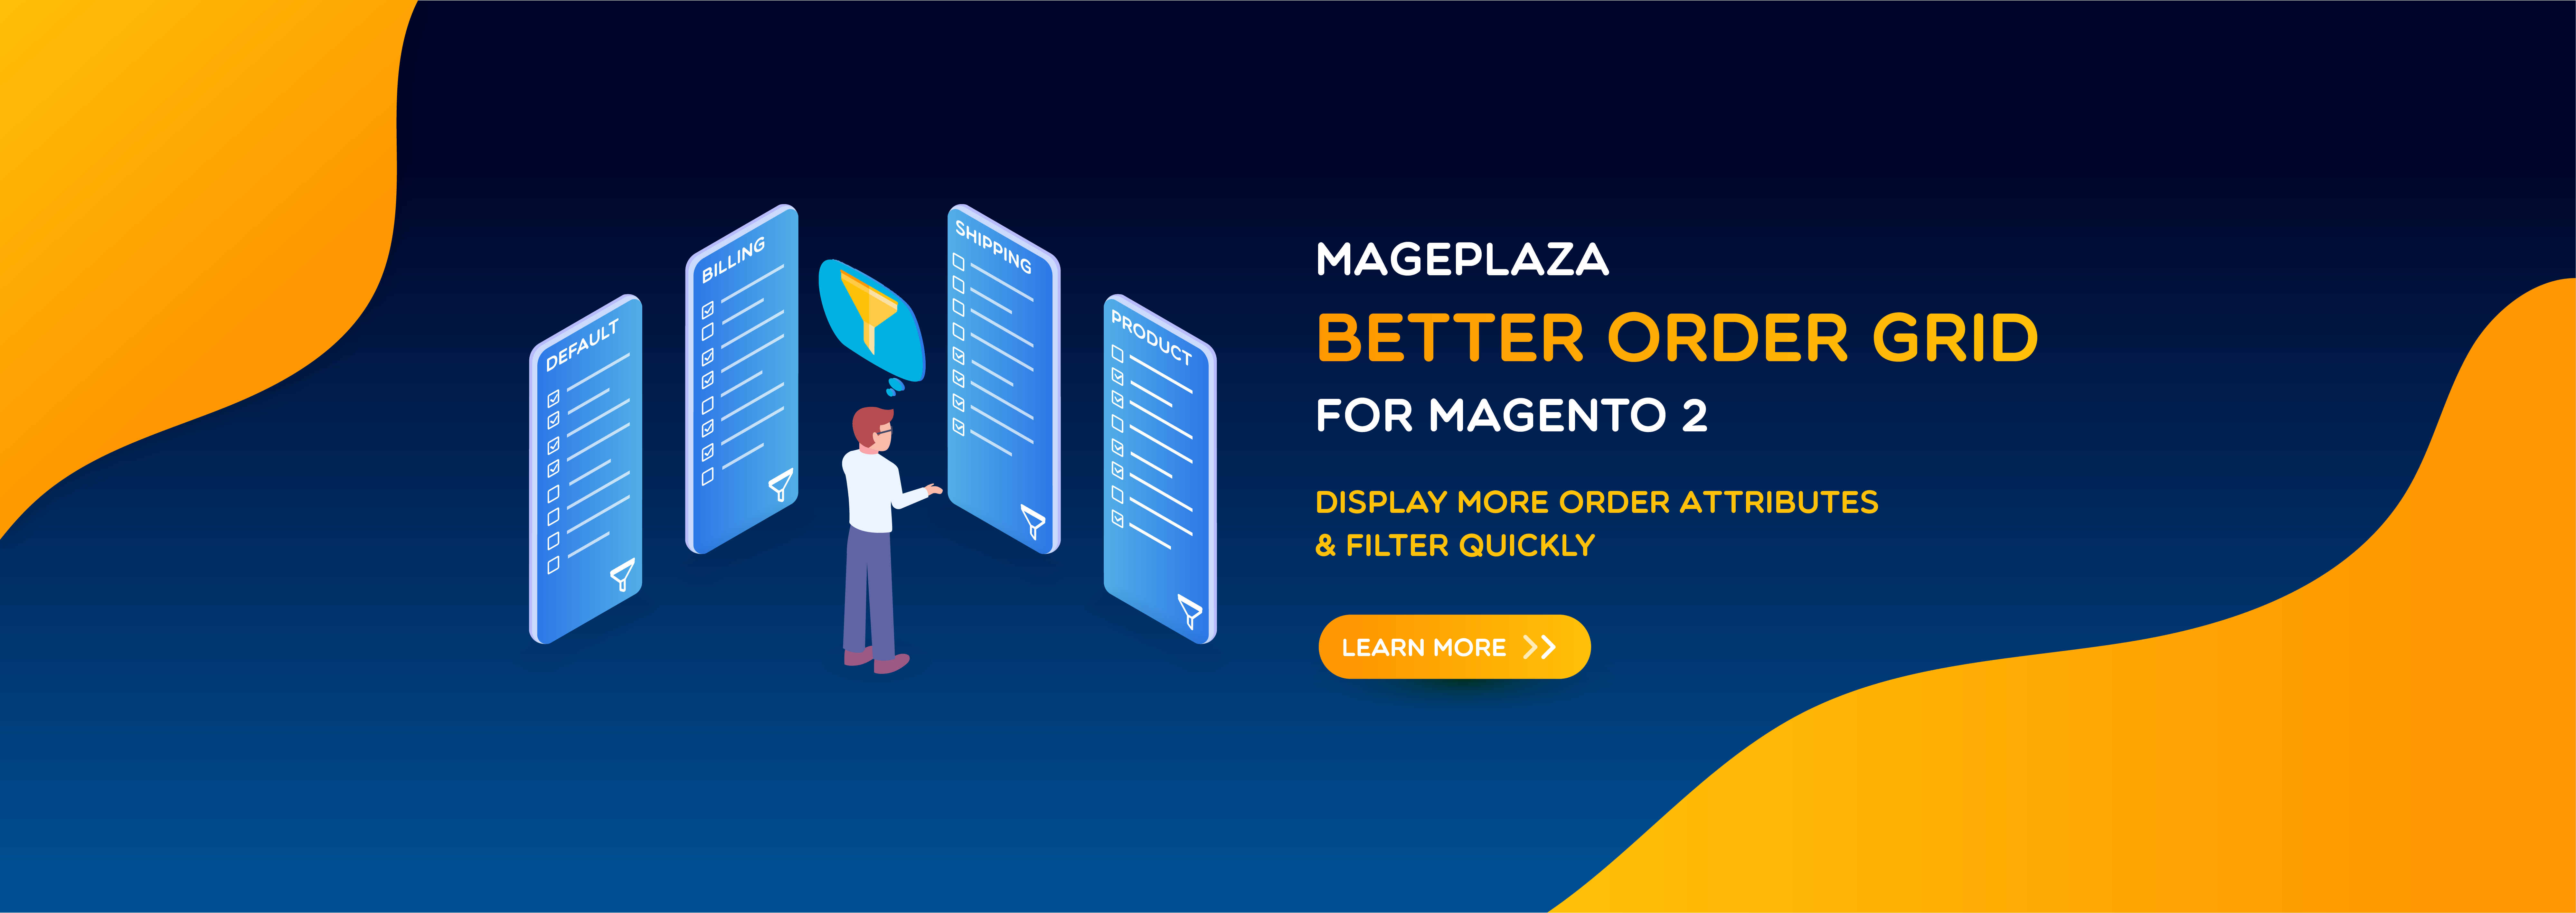 How to Manage Orders Effectively by Better Order Grid